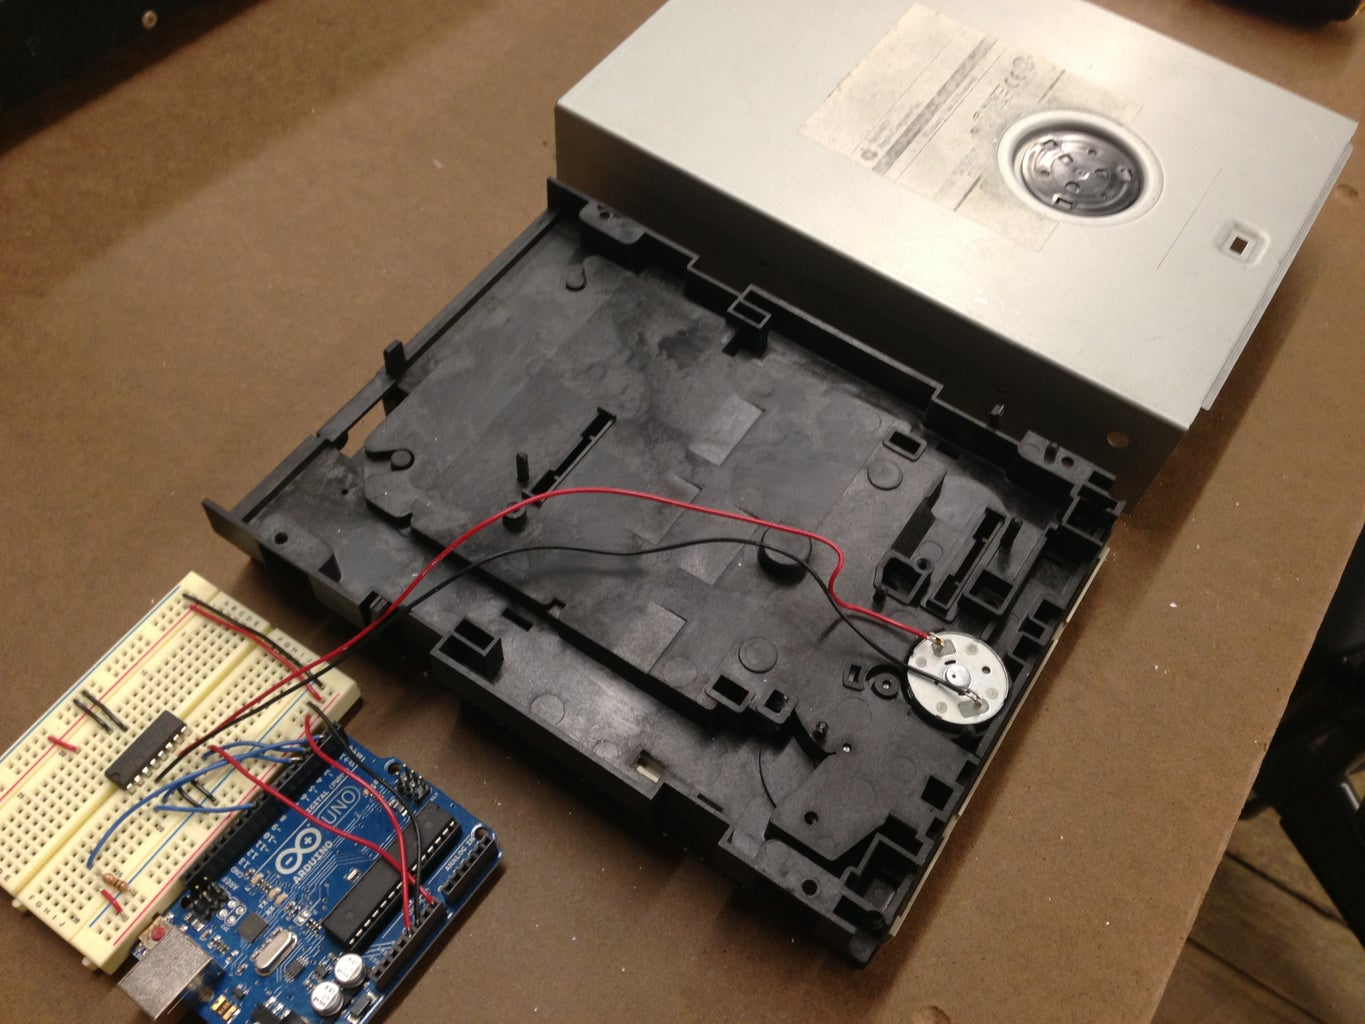 Take Apart the CD-ROM Drive and Solder 2 Cables to the Motor